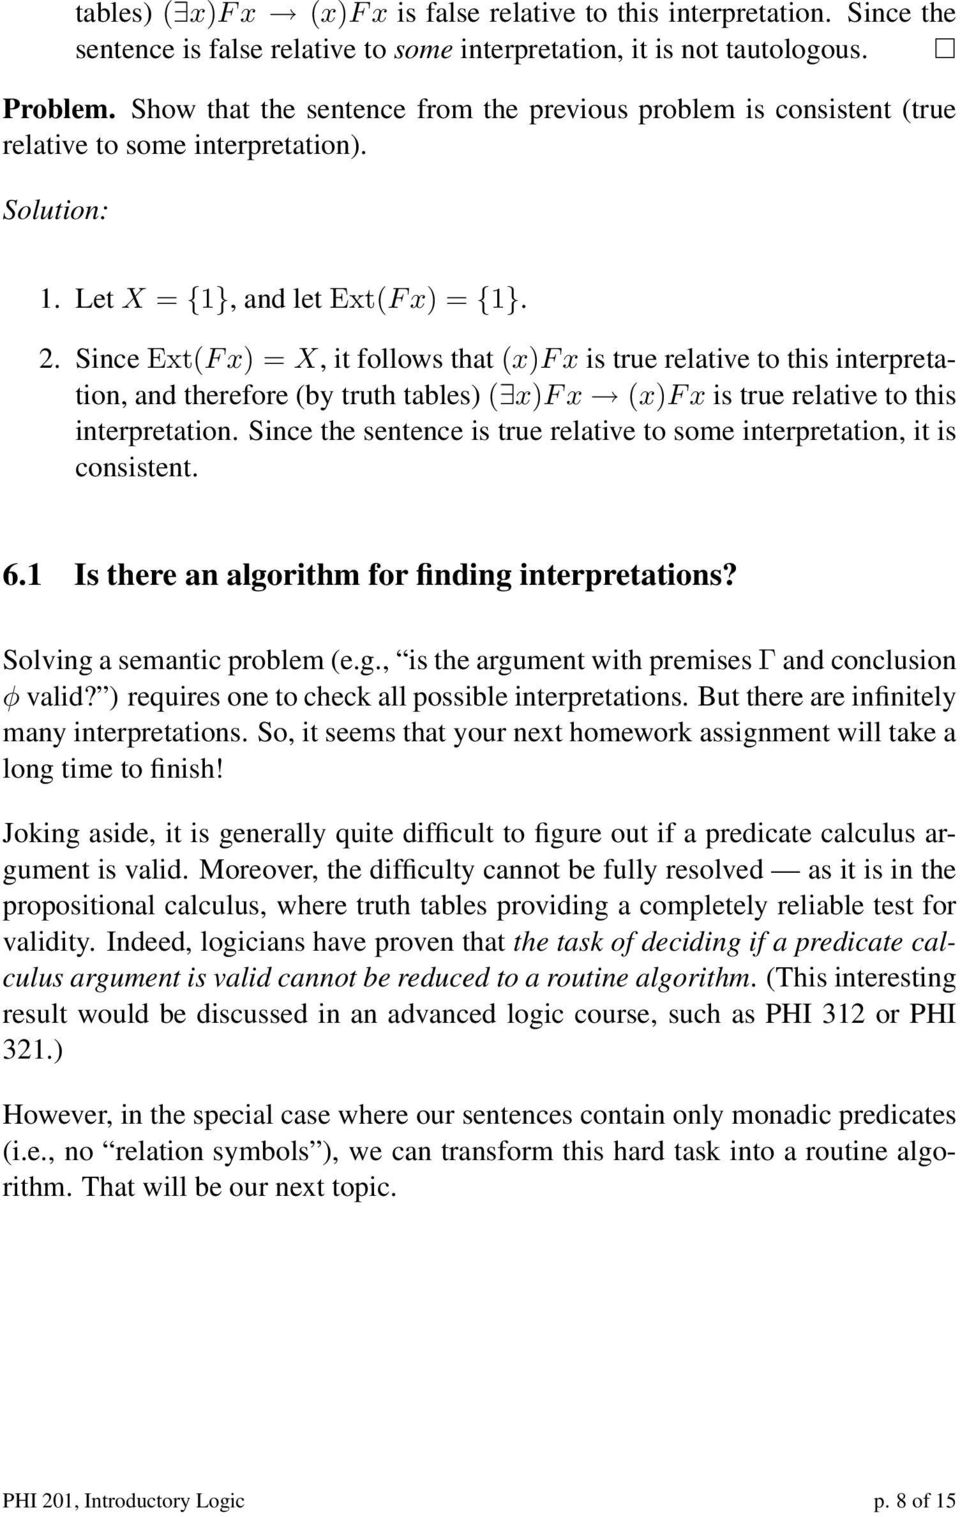 Since Ext(F x) = X, it follows that (x)f x is true relative to this interpretation, and therefore (by truth tables) ( x)f x (x)f x is true relative to this interpretation.